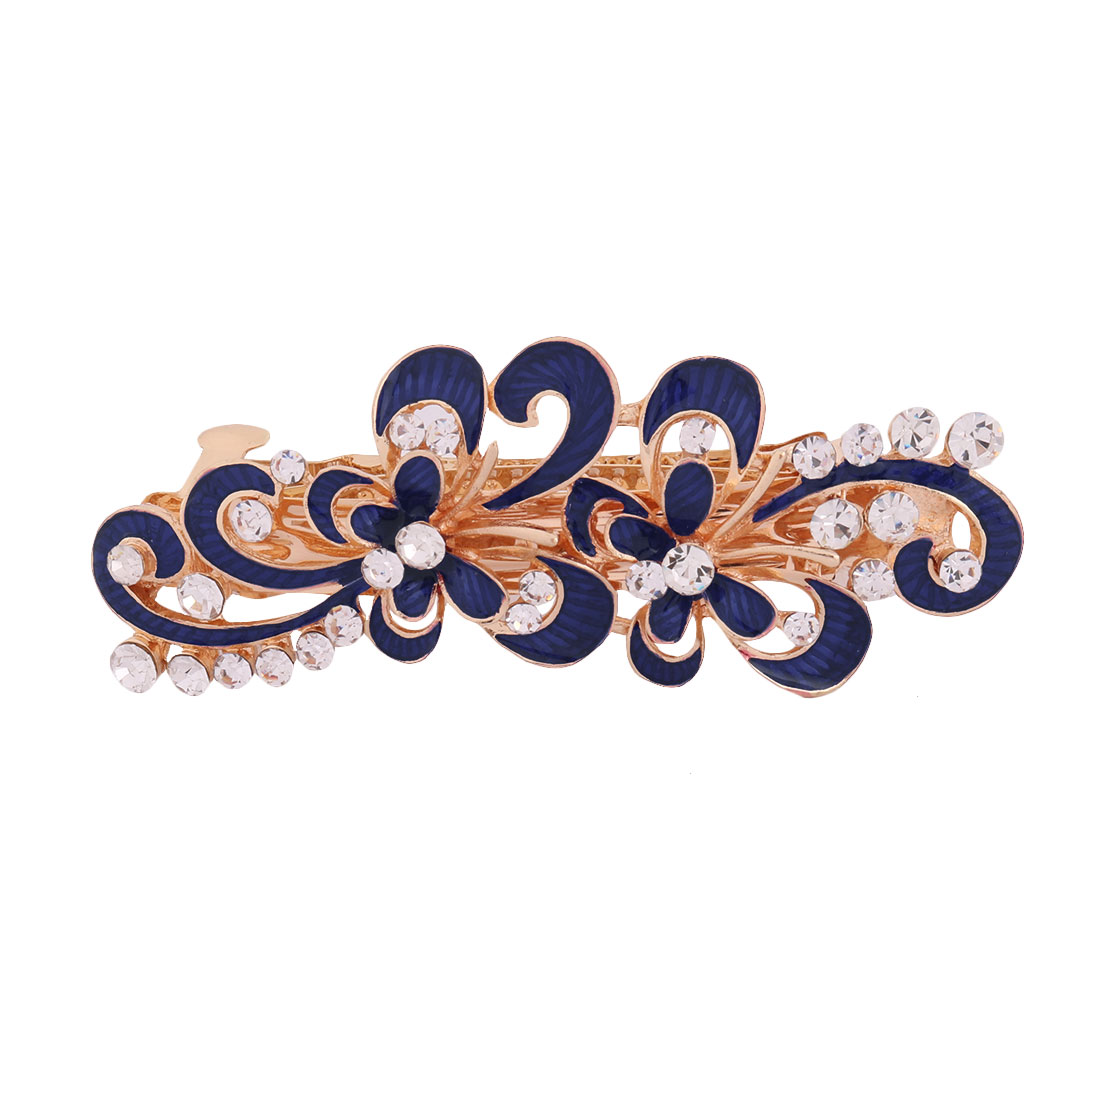 Ladies Metal Flower Design Faux Rhinestones Inlaid Hairstyle Hair Clip Blue